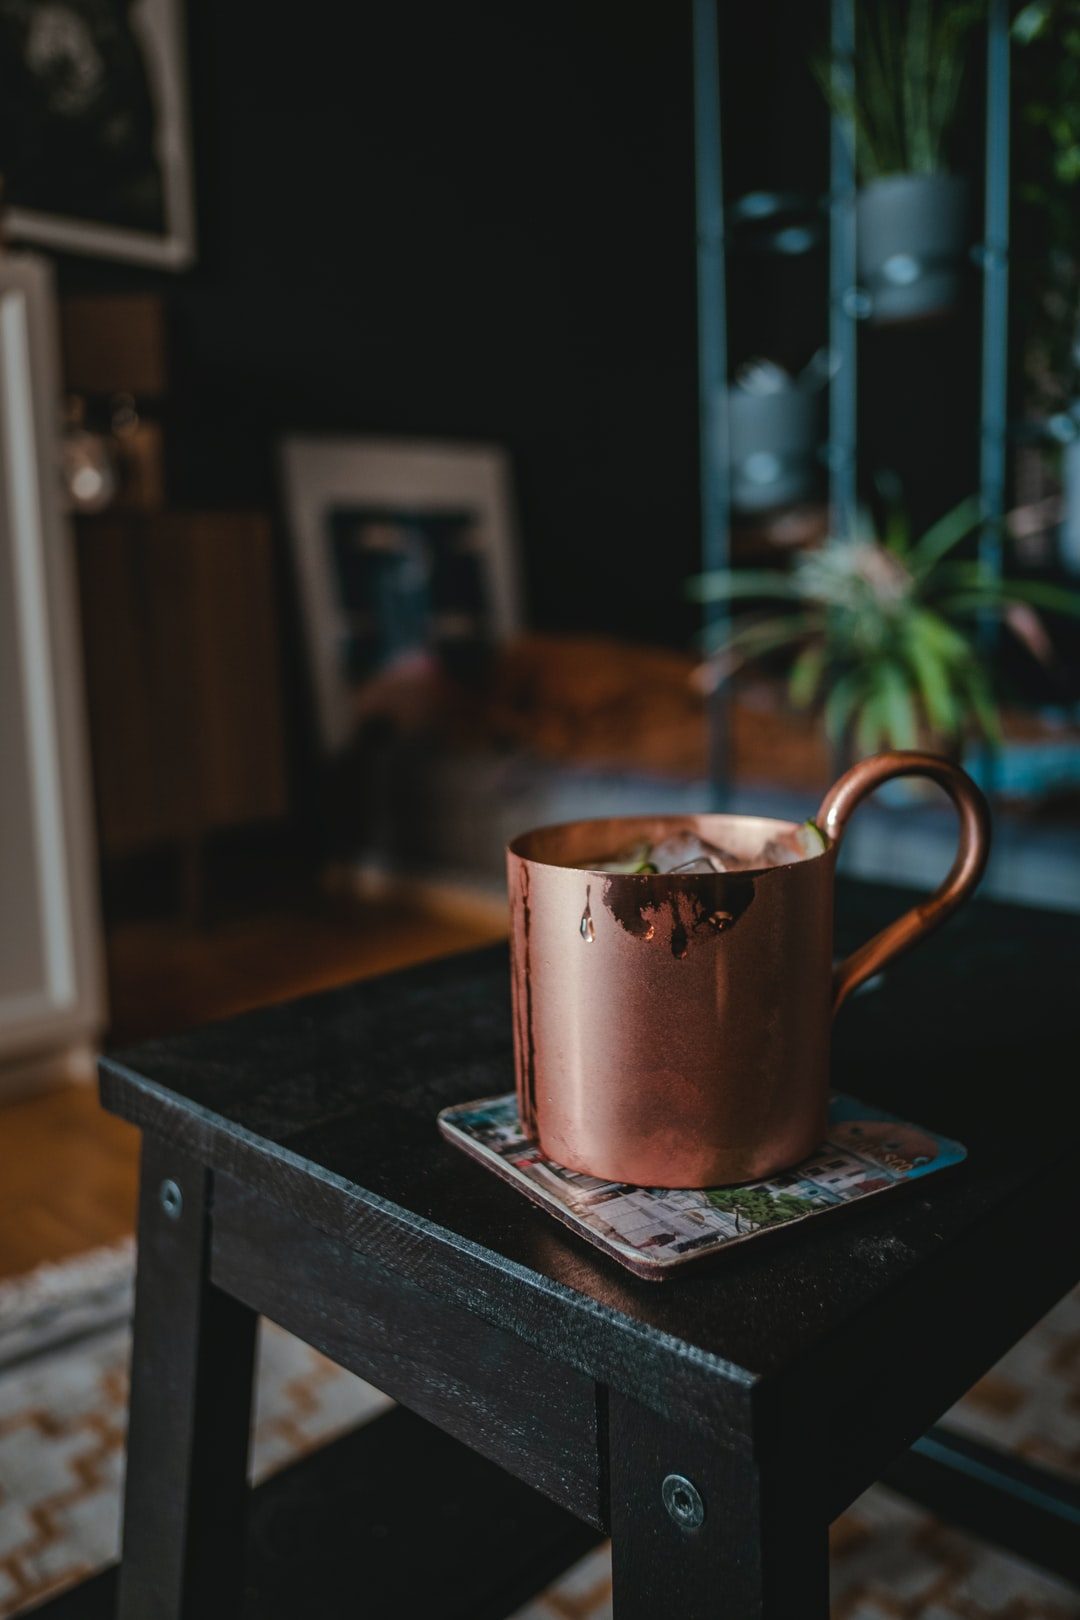 Moscow Mule a day keeps the doc away